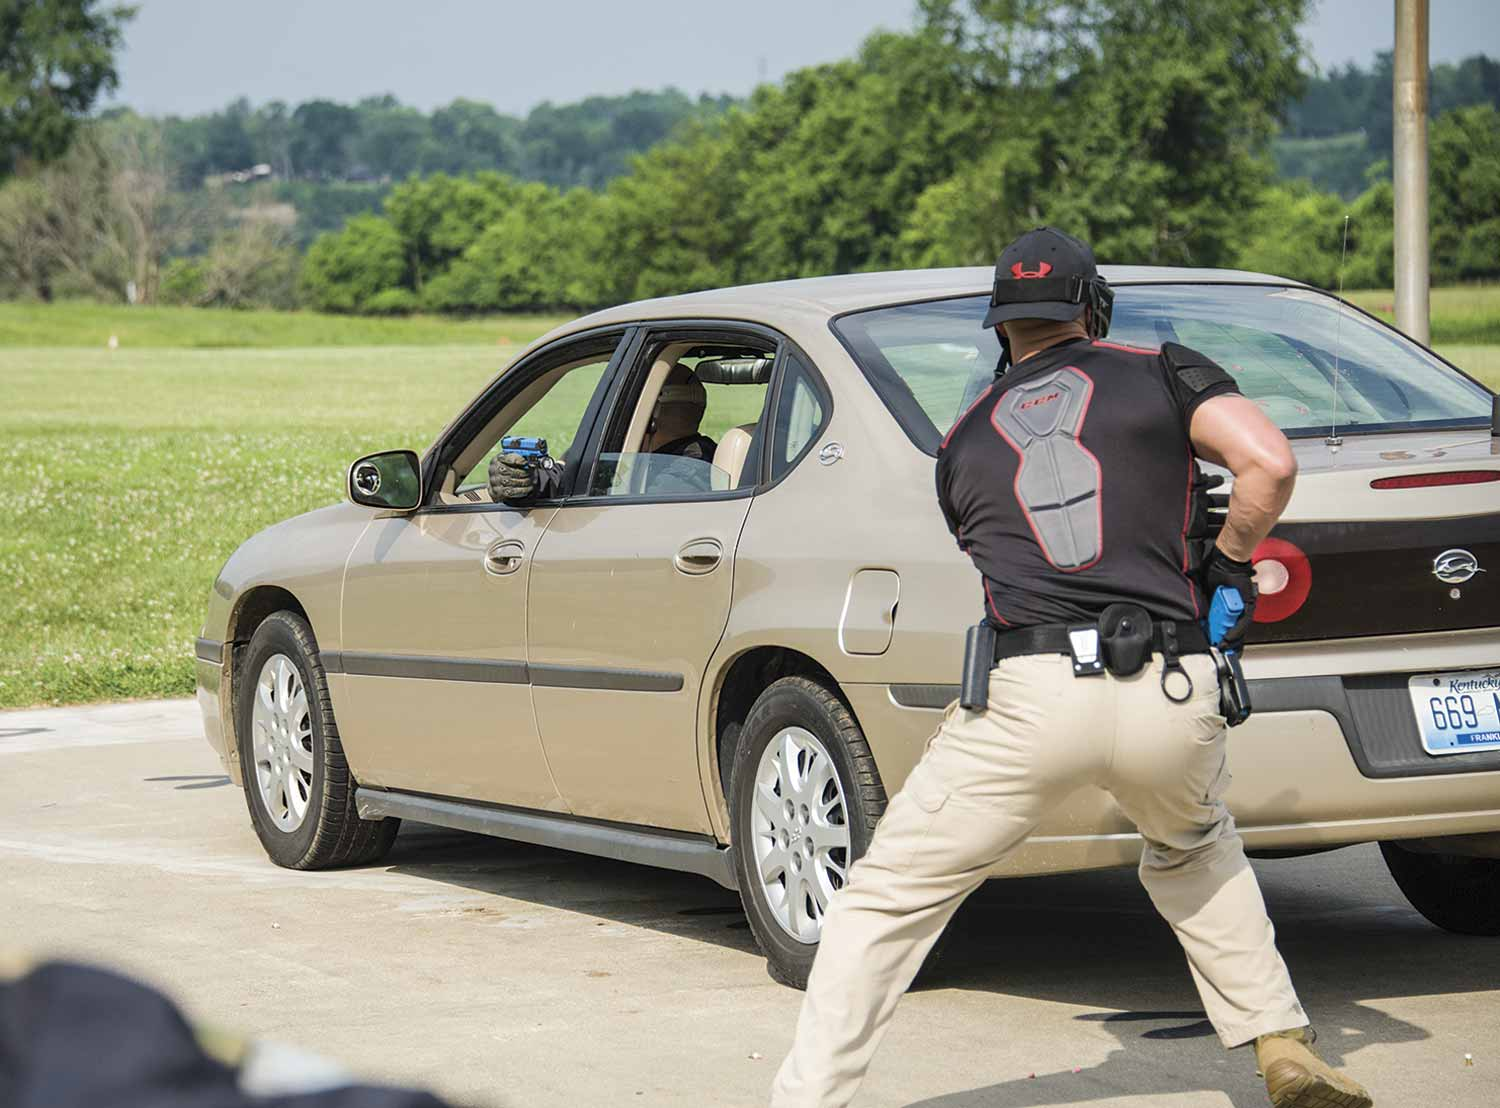 As officers in training approach a stopped vehicle, they are taught to keep their bodies close to the vehicle, making themselves a smaller target. (Photo by Jim Robertson)